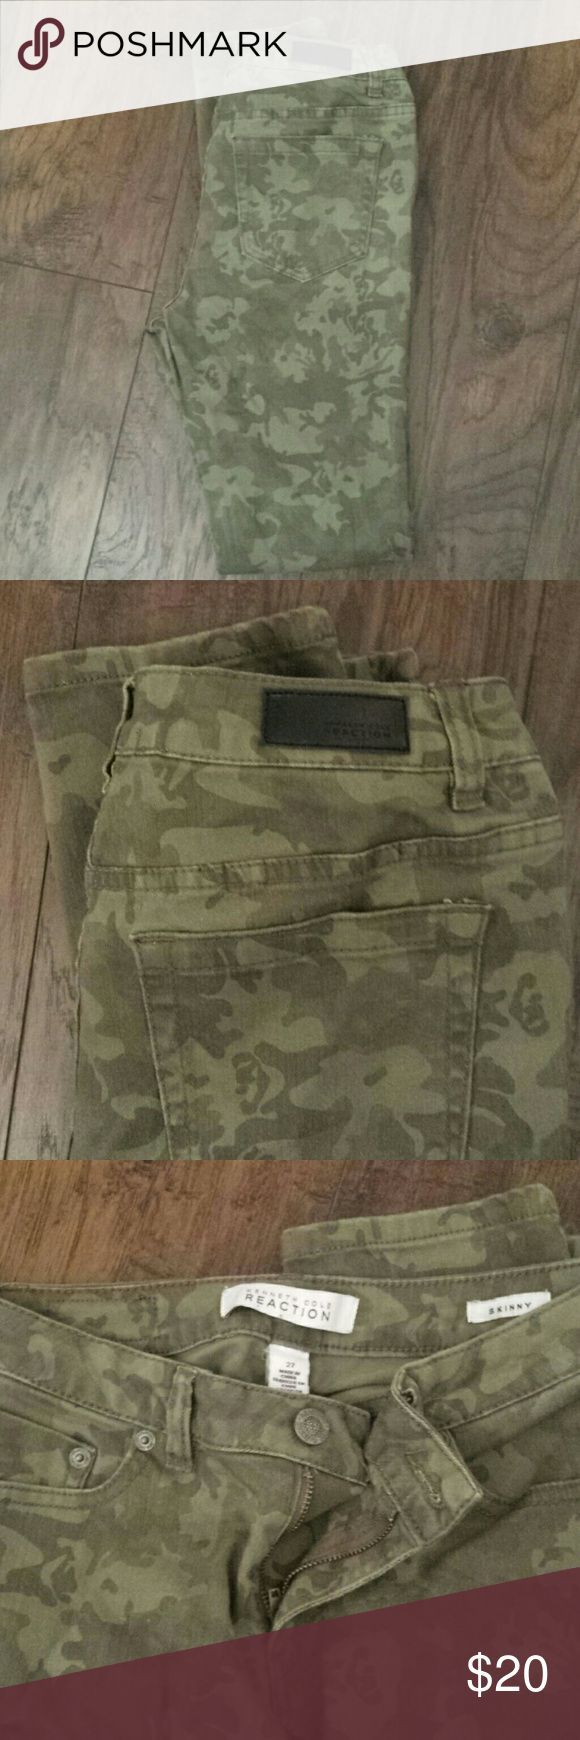 Kenneth Cole Camo skinny jeans EUC Worn once  So cute  Camo in color  Skinny jeans to ankle  Some stretch  Low to mid rise Kenneth Cole Reaction Jeans Skinny